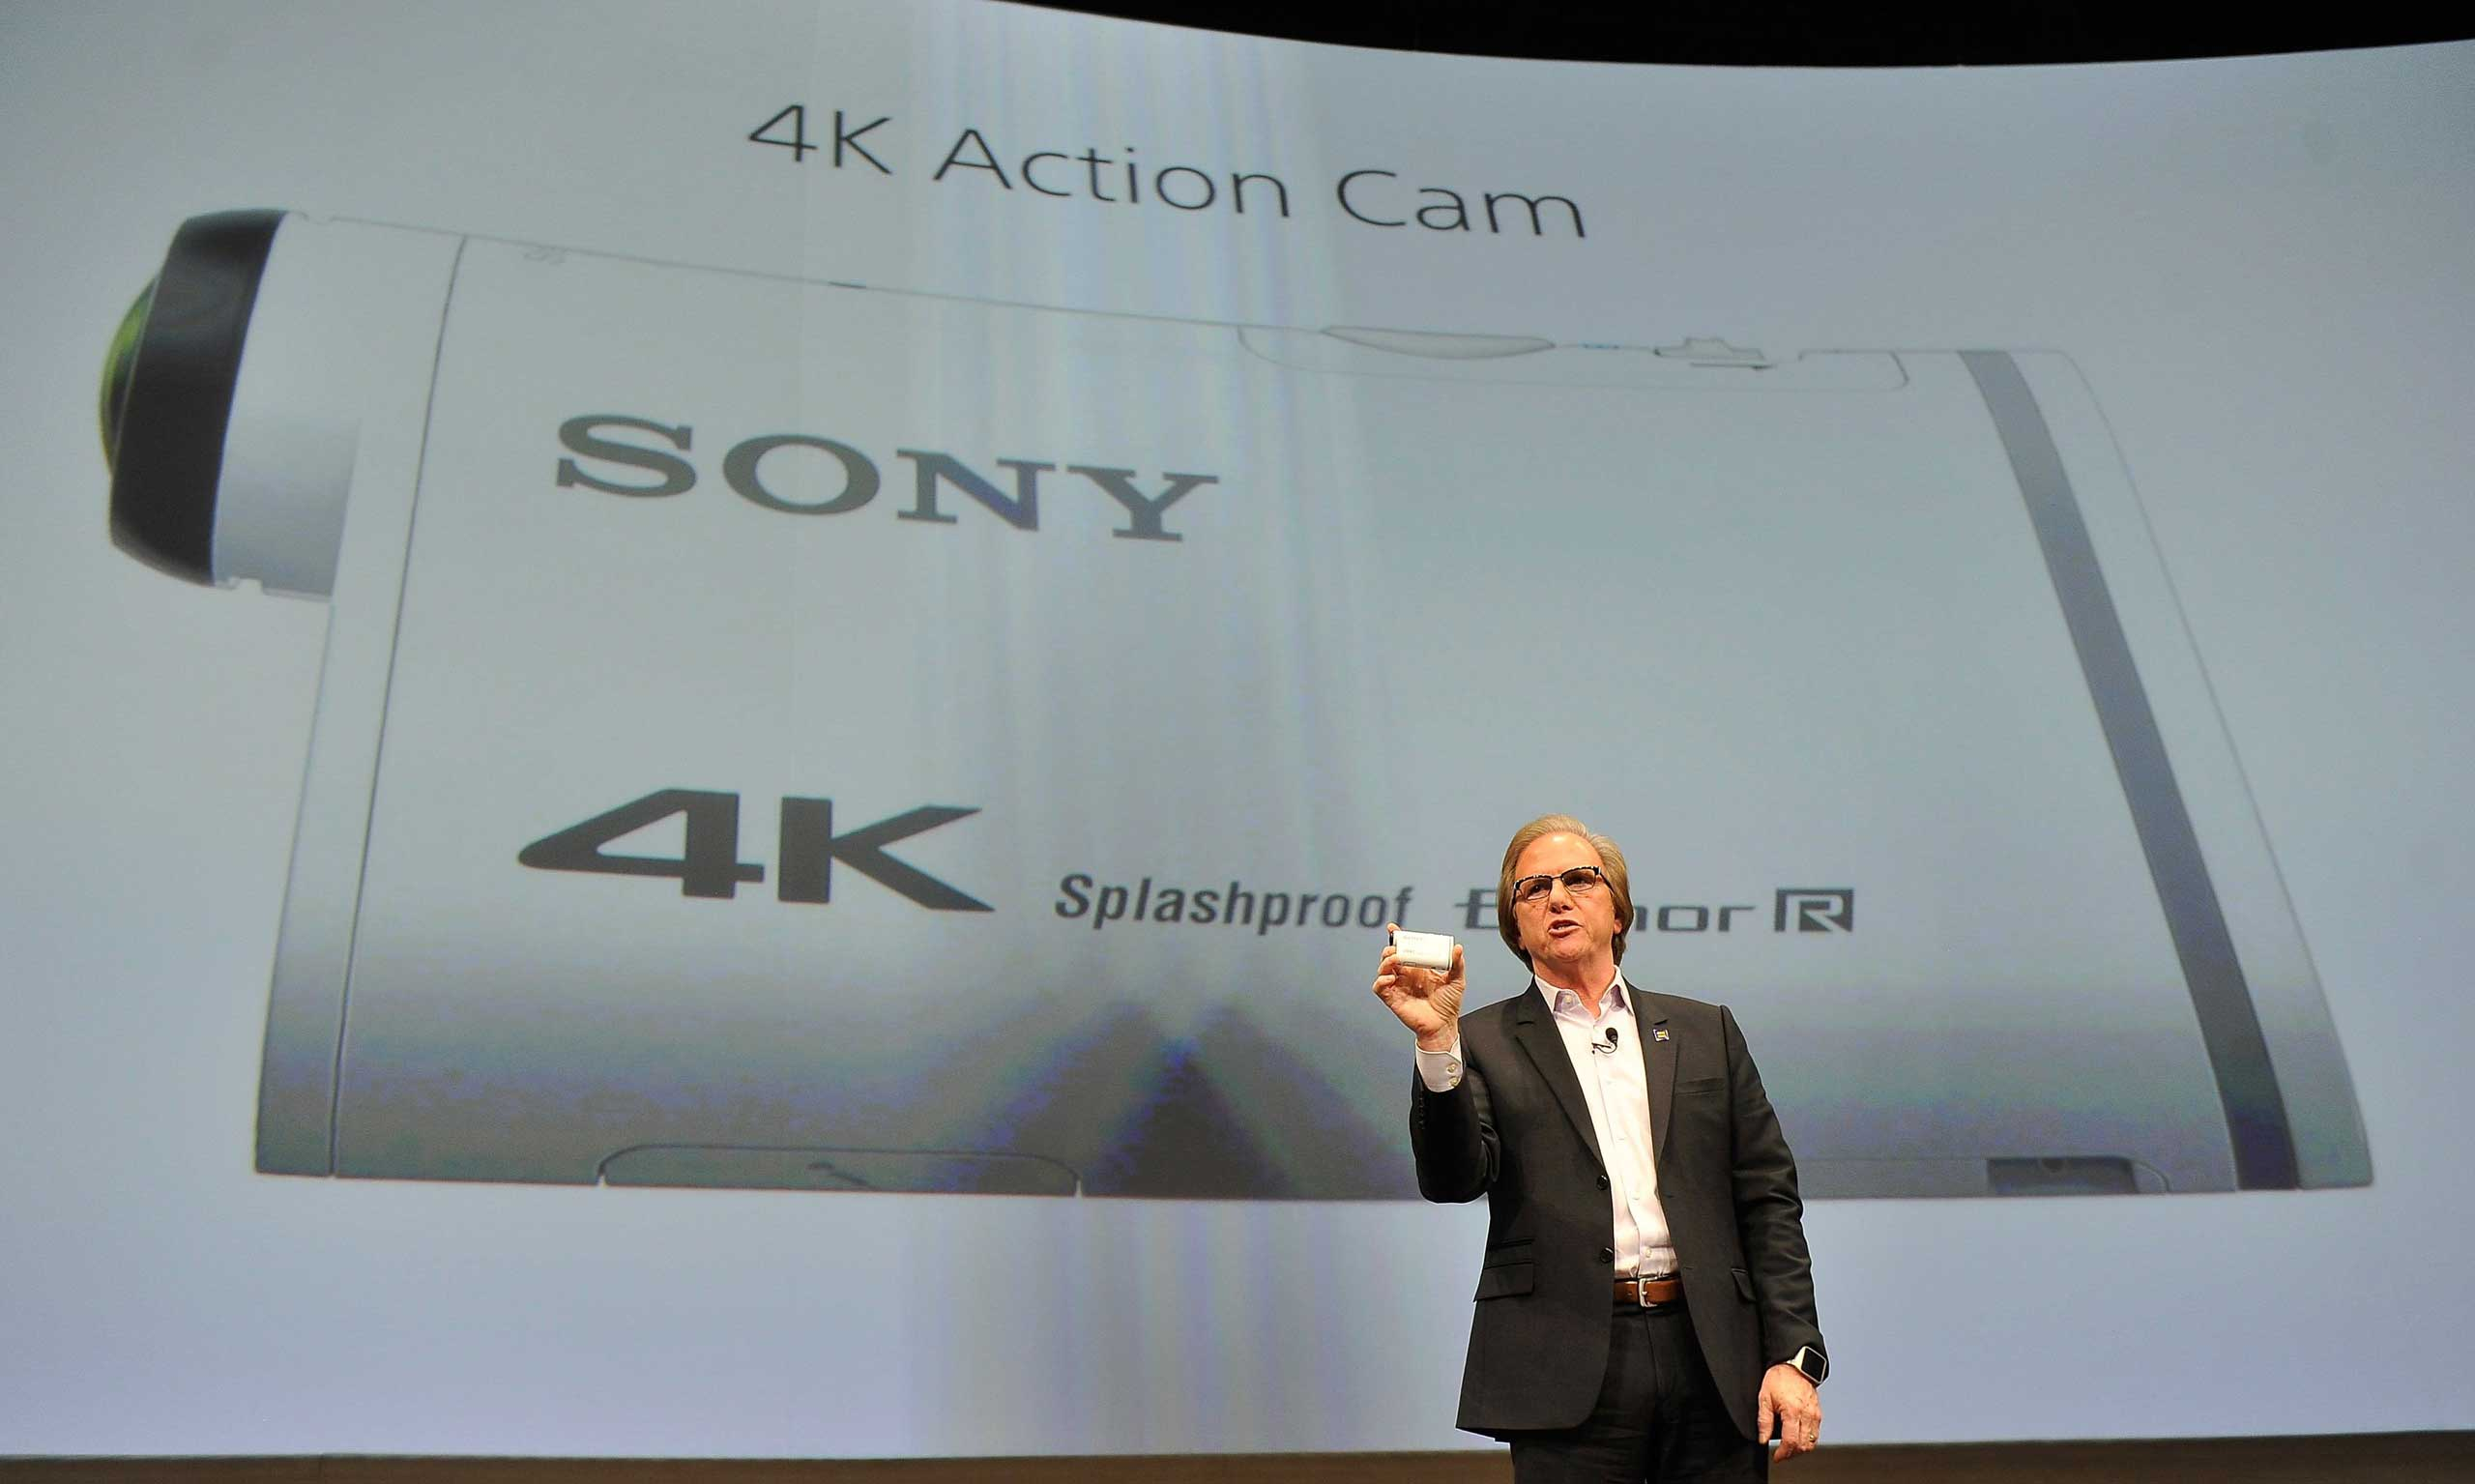 Sony Electronics President and COO Mike Fasulo displays the Sony 4K Action Cam at a press event on Jan. 5, 2015.